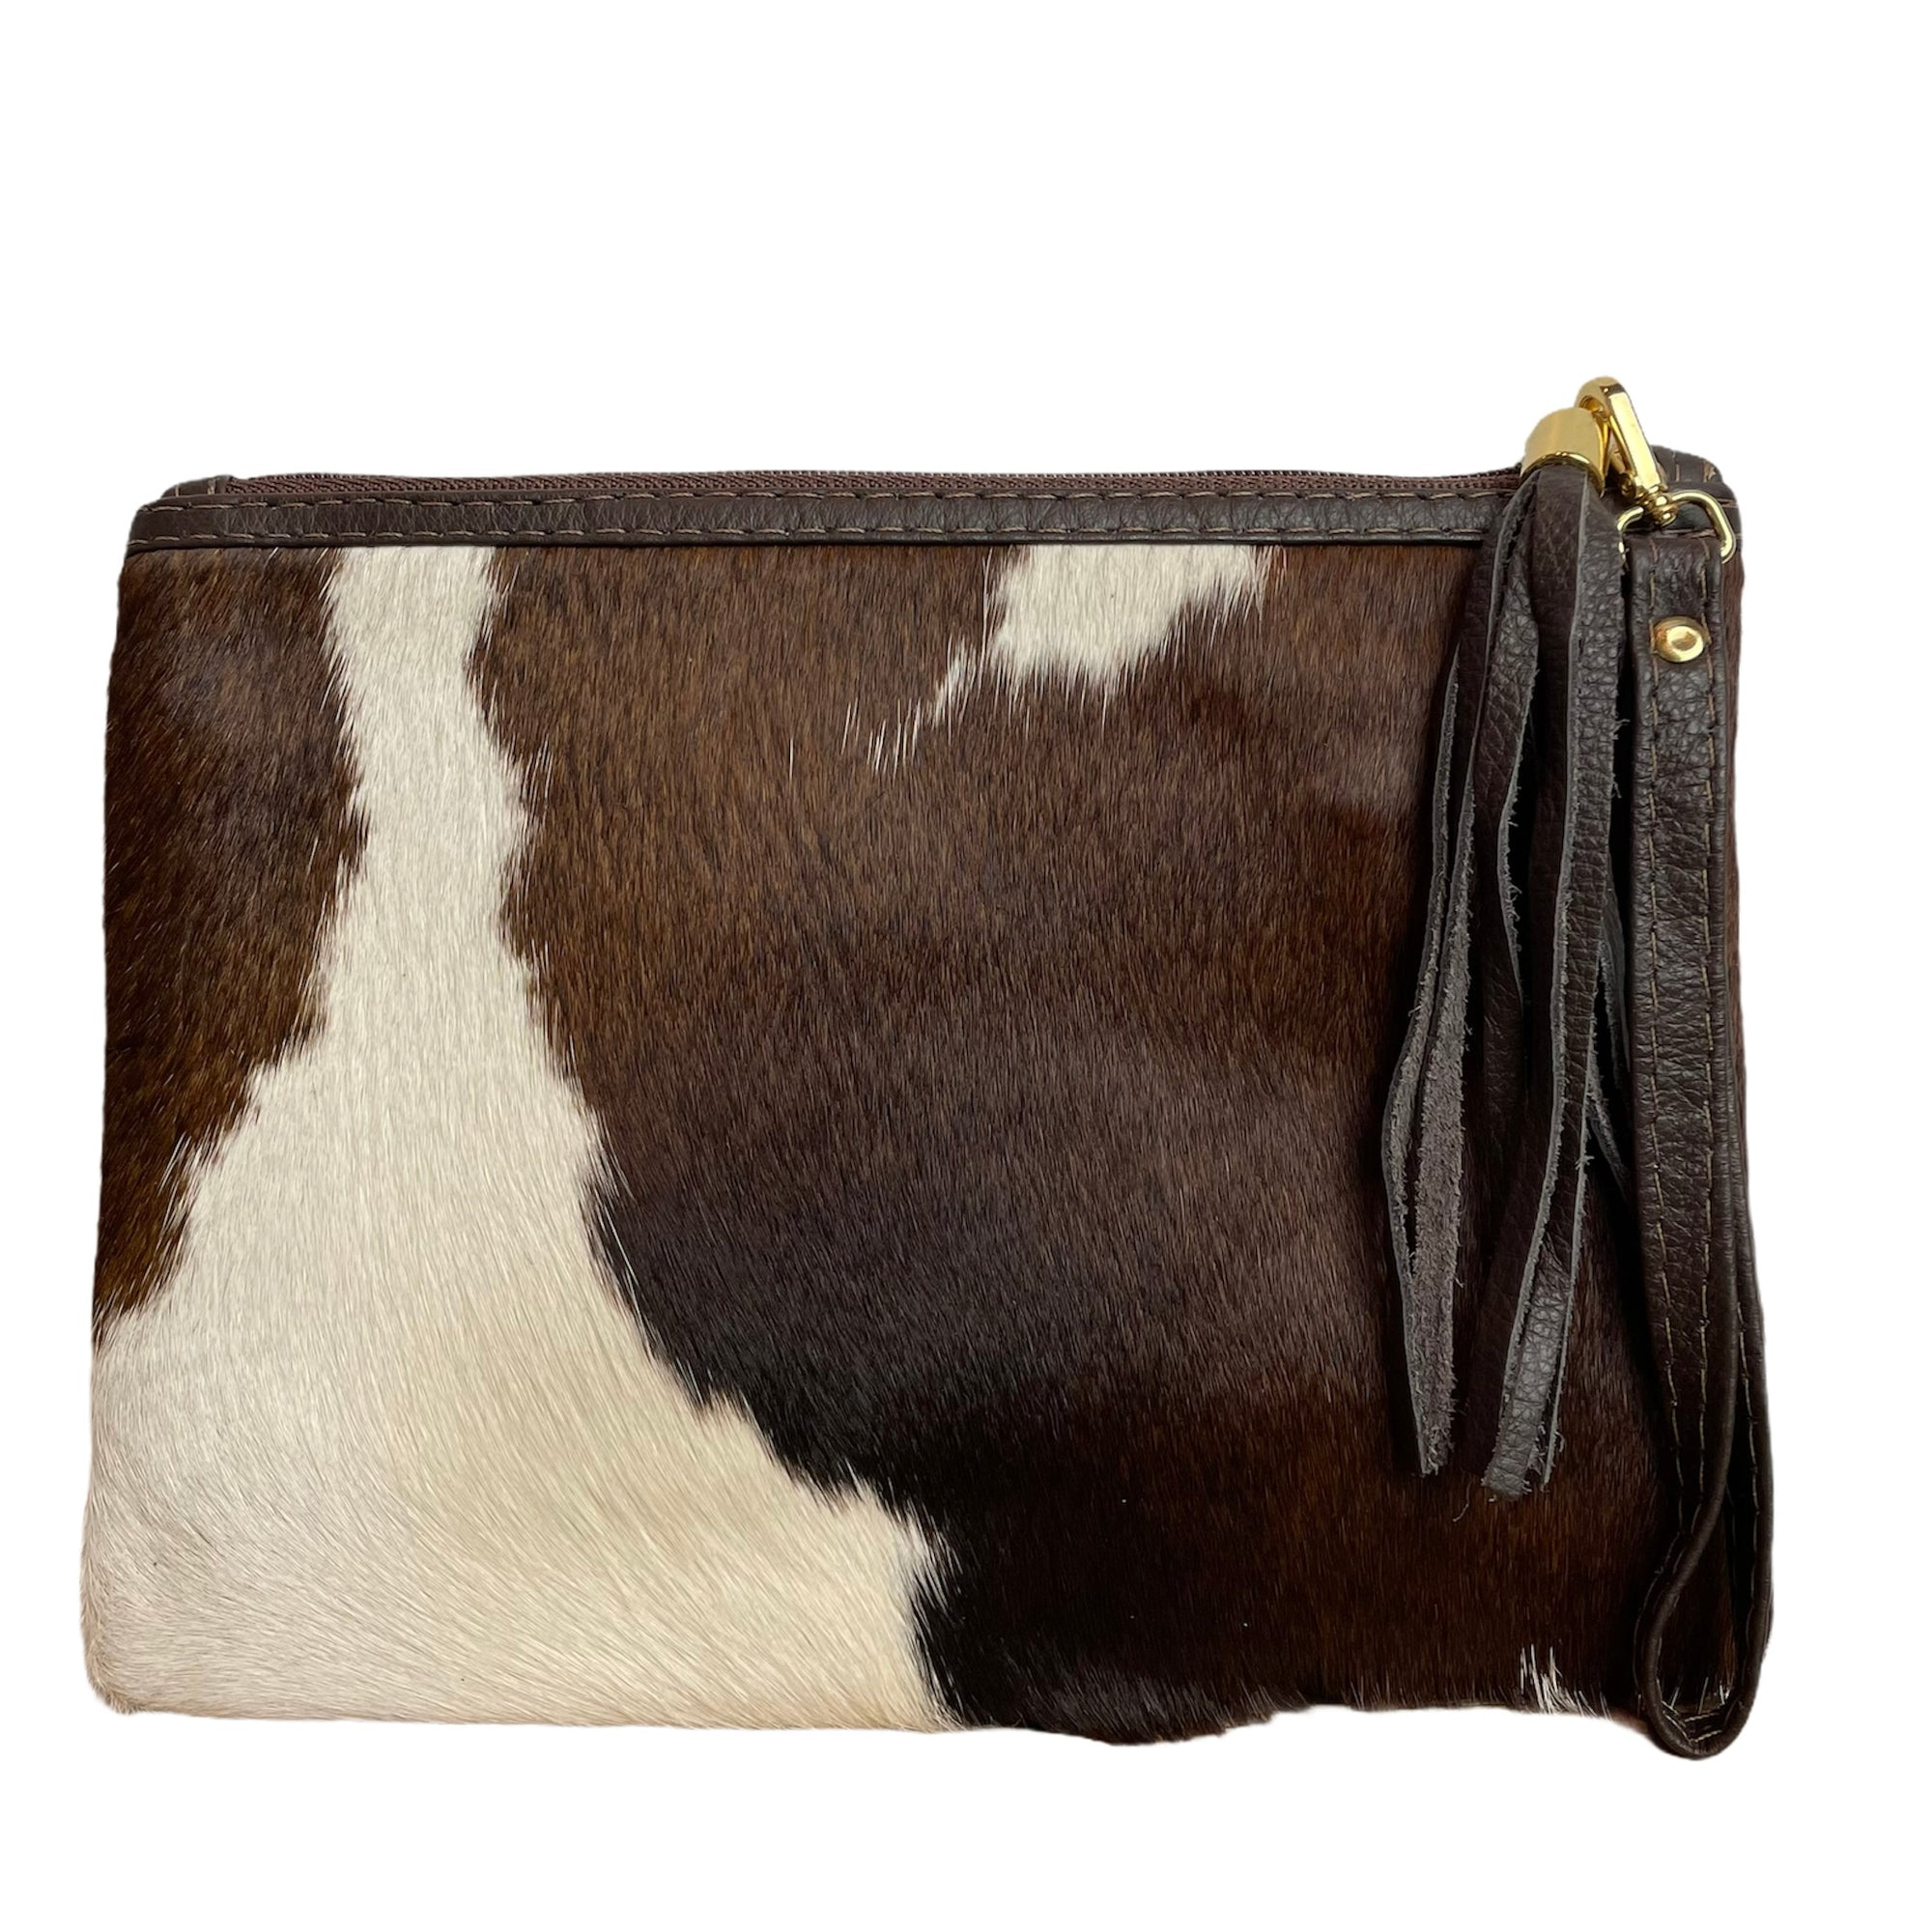 COWHIDE EVERYDAY SMALL CLUTCH - TRICOLOUR. Izel Designs